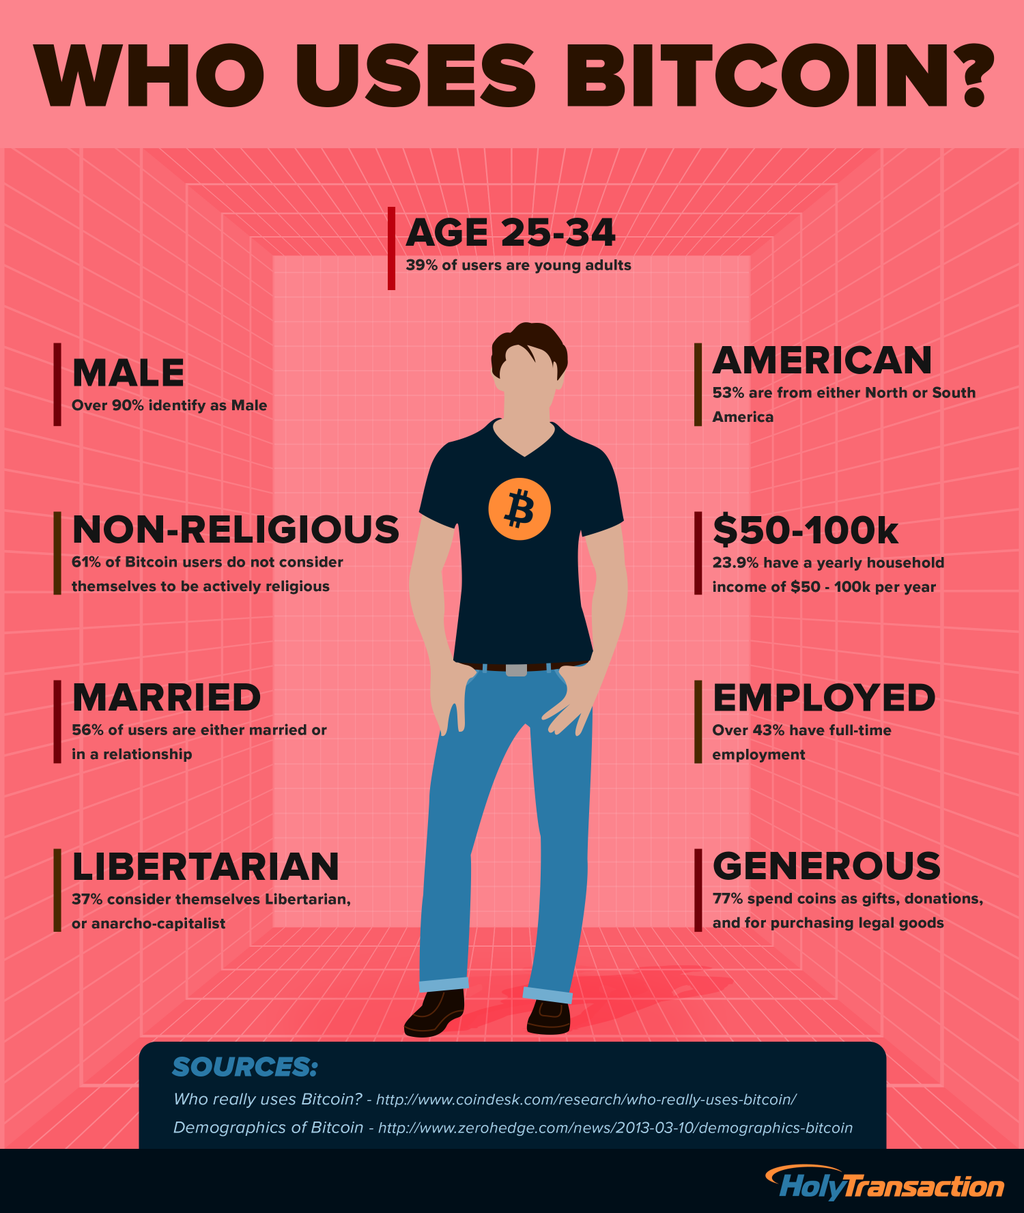 Who uses bitcoin infographic - HolyTransaction